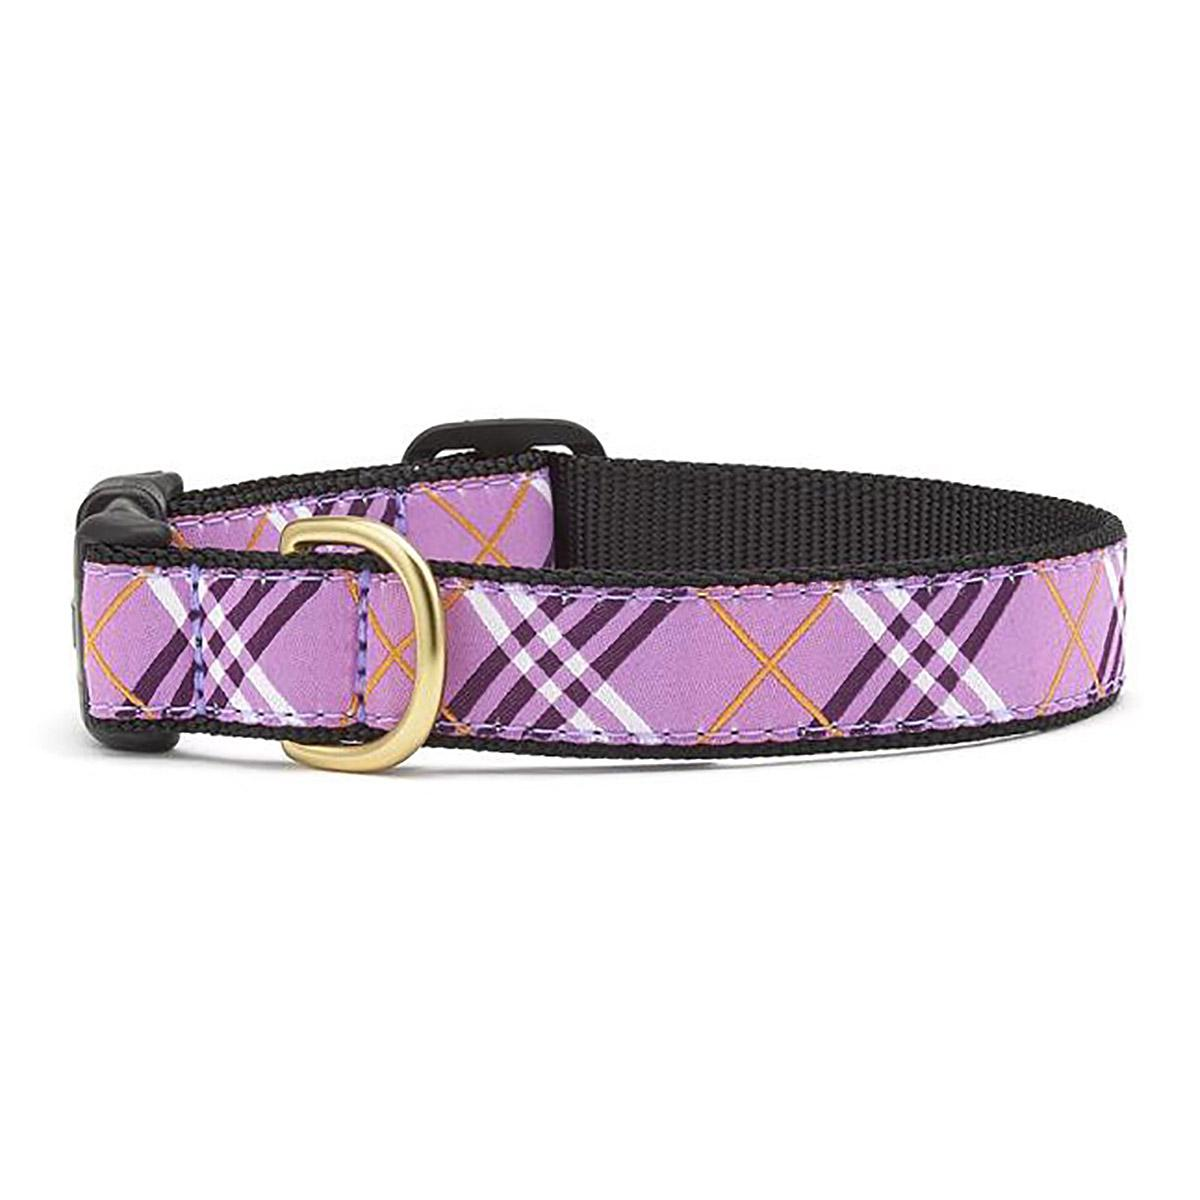 Lavender Lattice Dog Collar by Up Country